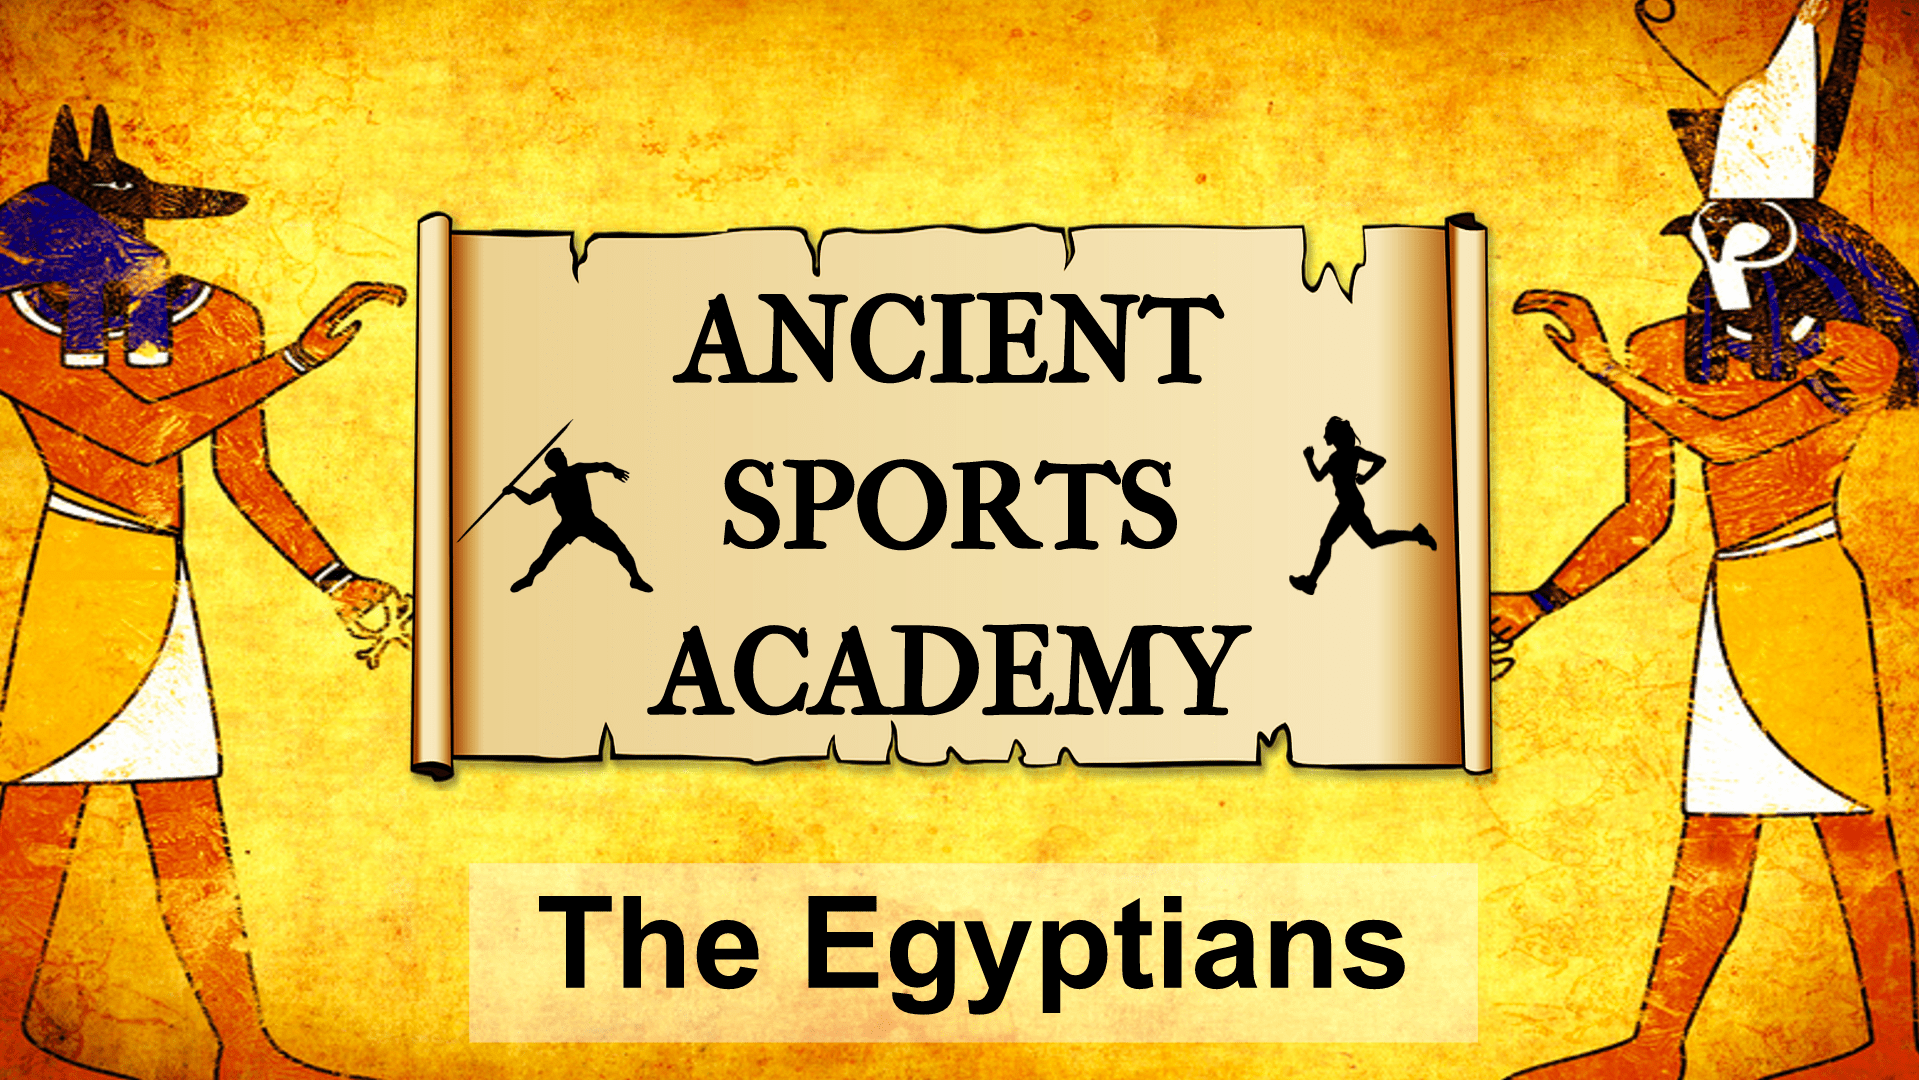 Ancient Sports Academy Egyptians Ks2 English History